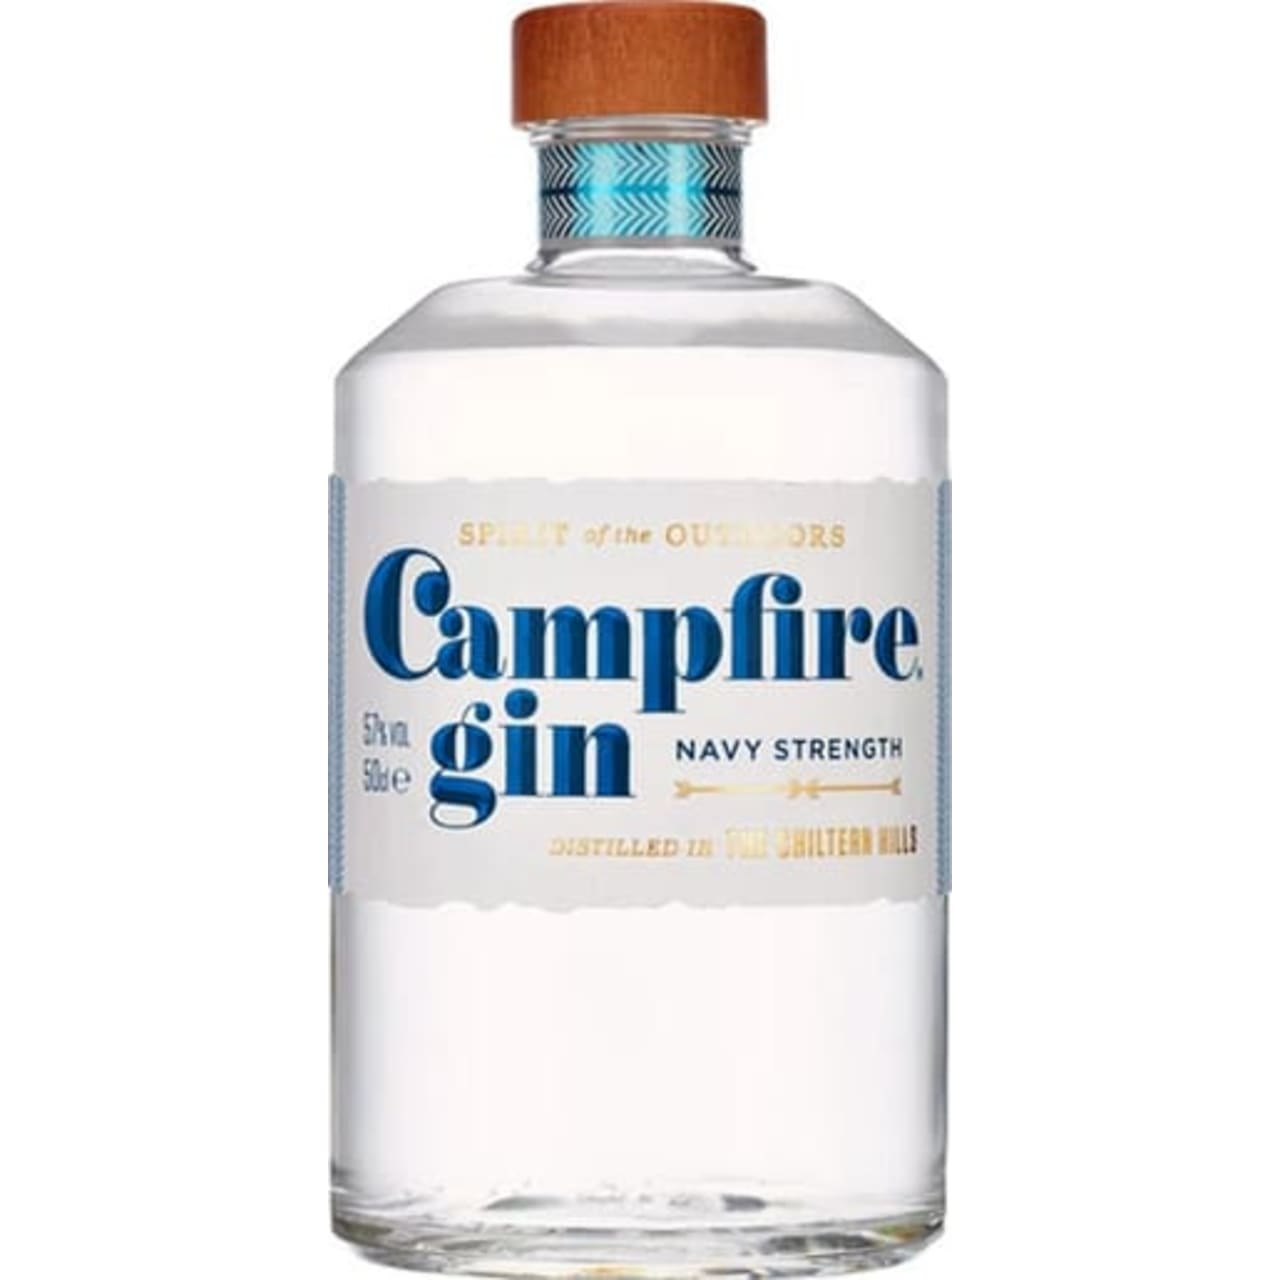 Product Image - Campfire Navy Strength Gin